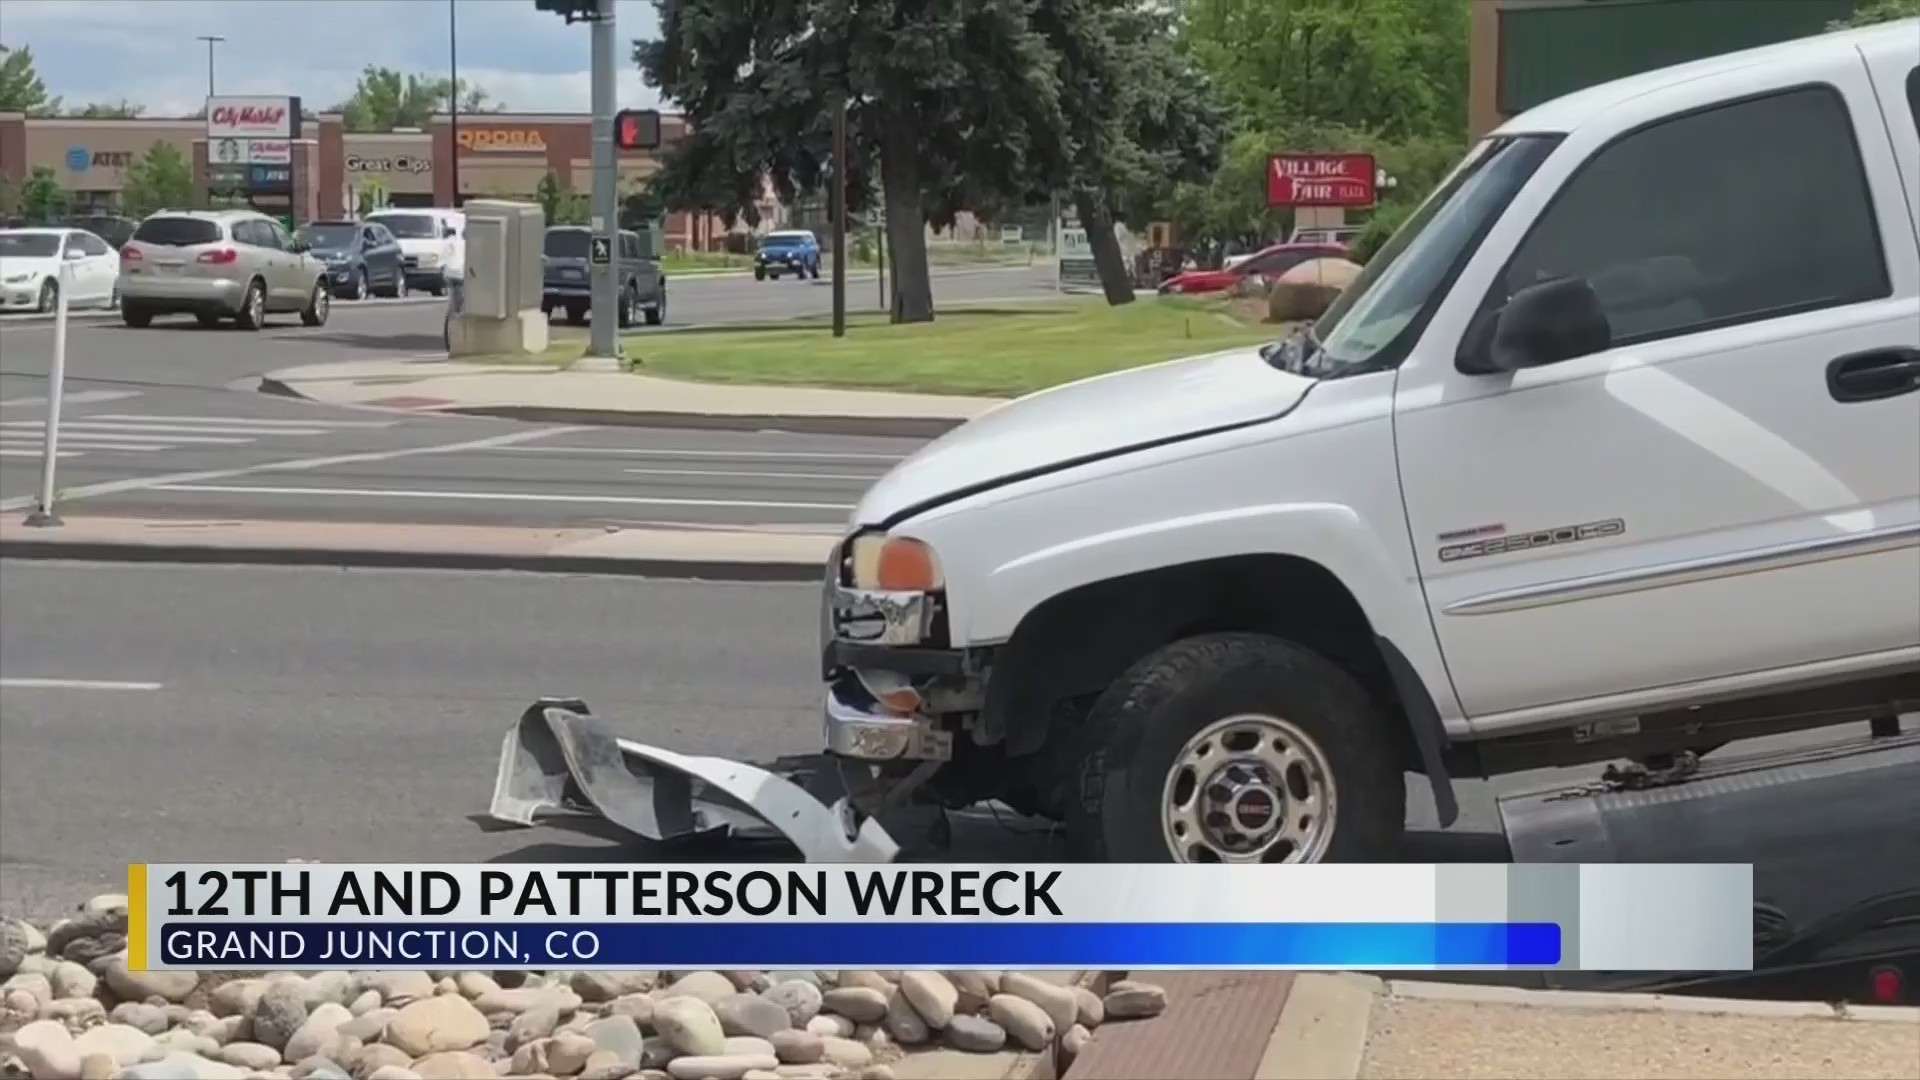 12th and Patterson Wreck